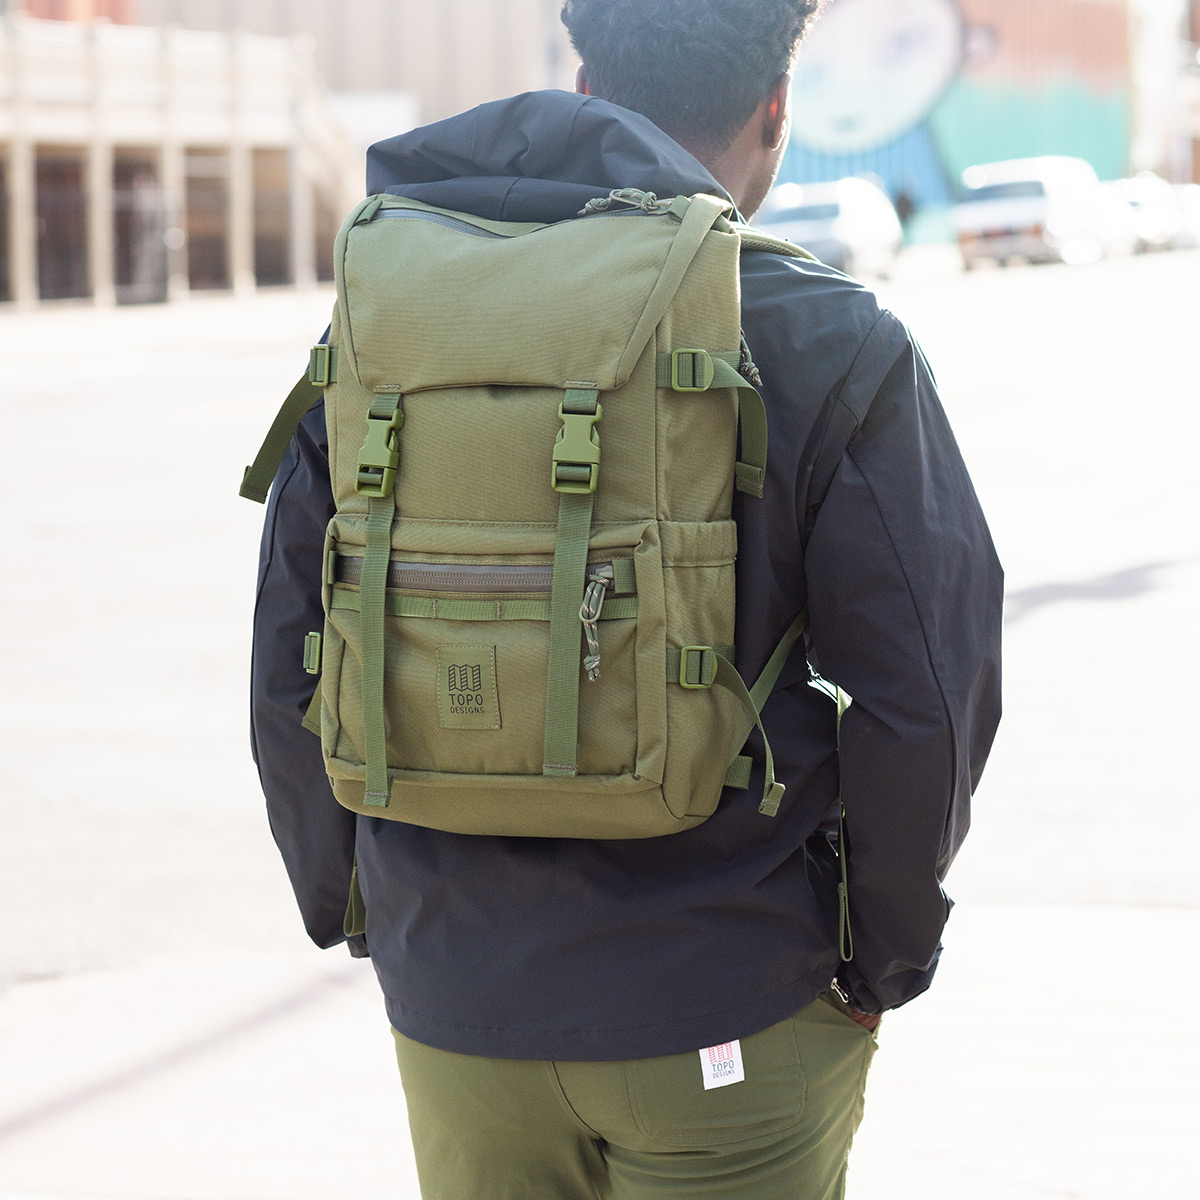 Topo Designs Rover Pack Tech Olive, backpack built to work wherever you do